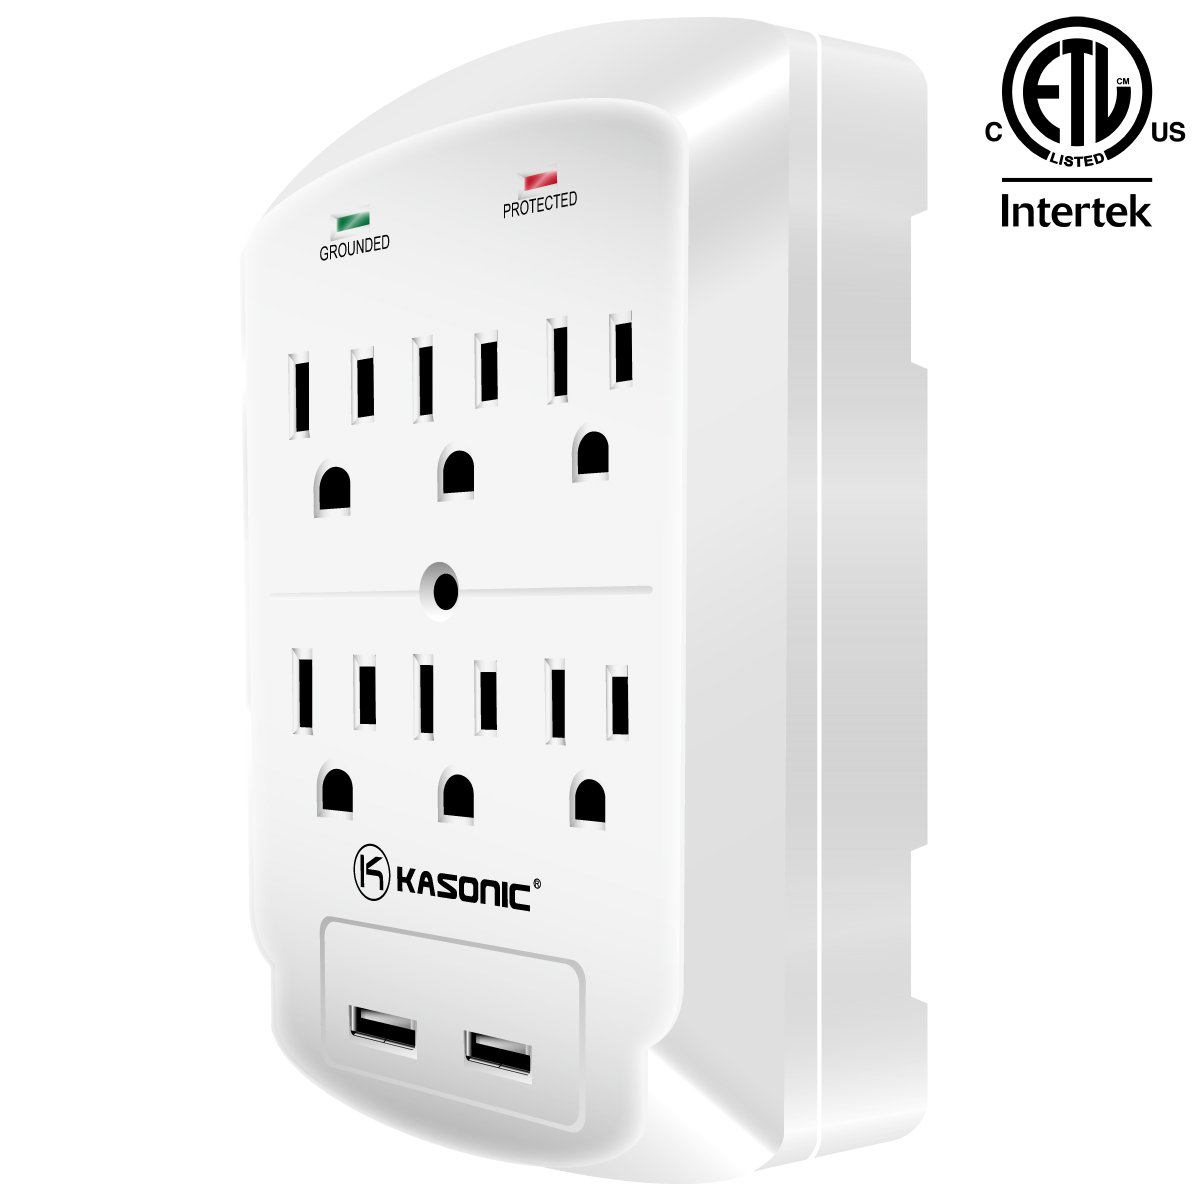 Wall Mount Power Outlet Kasonic 6 Ac Socket Surge Multiple Outlets Moreover How To Wire A Wiring Diagram As Well Protector With 21amp Dual Usb Charging Station Grounding And Protection Indicator For Home